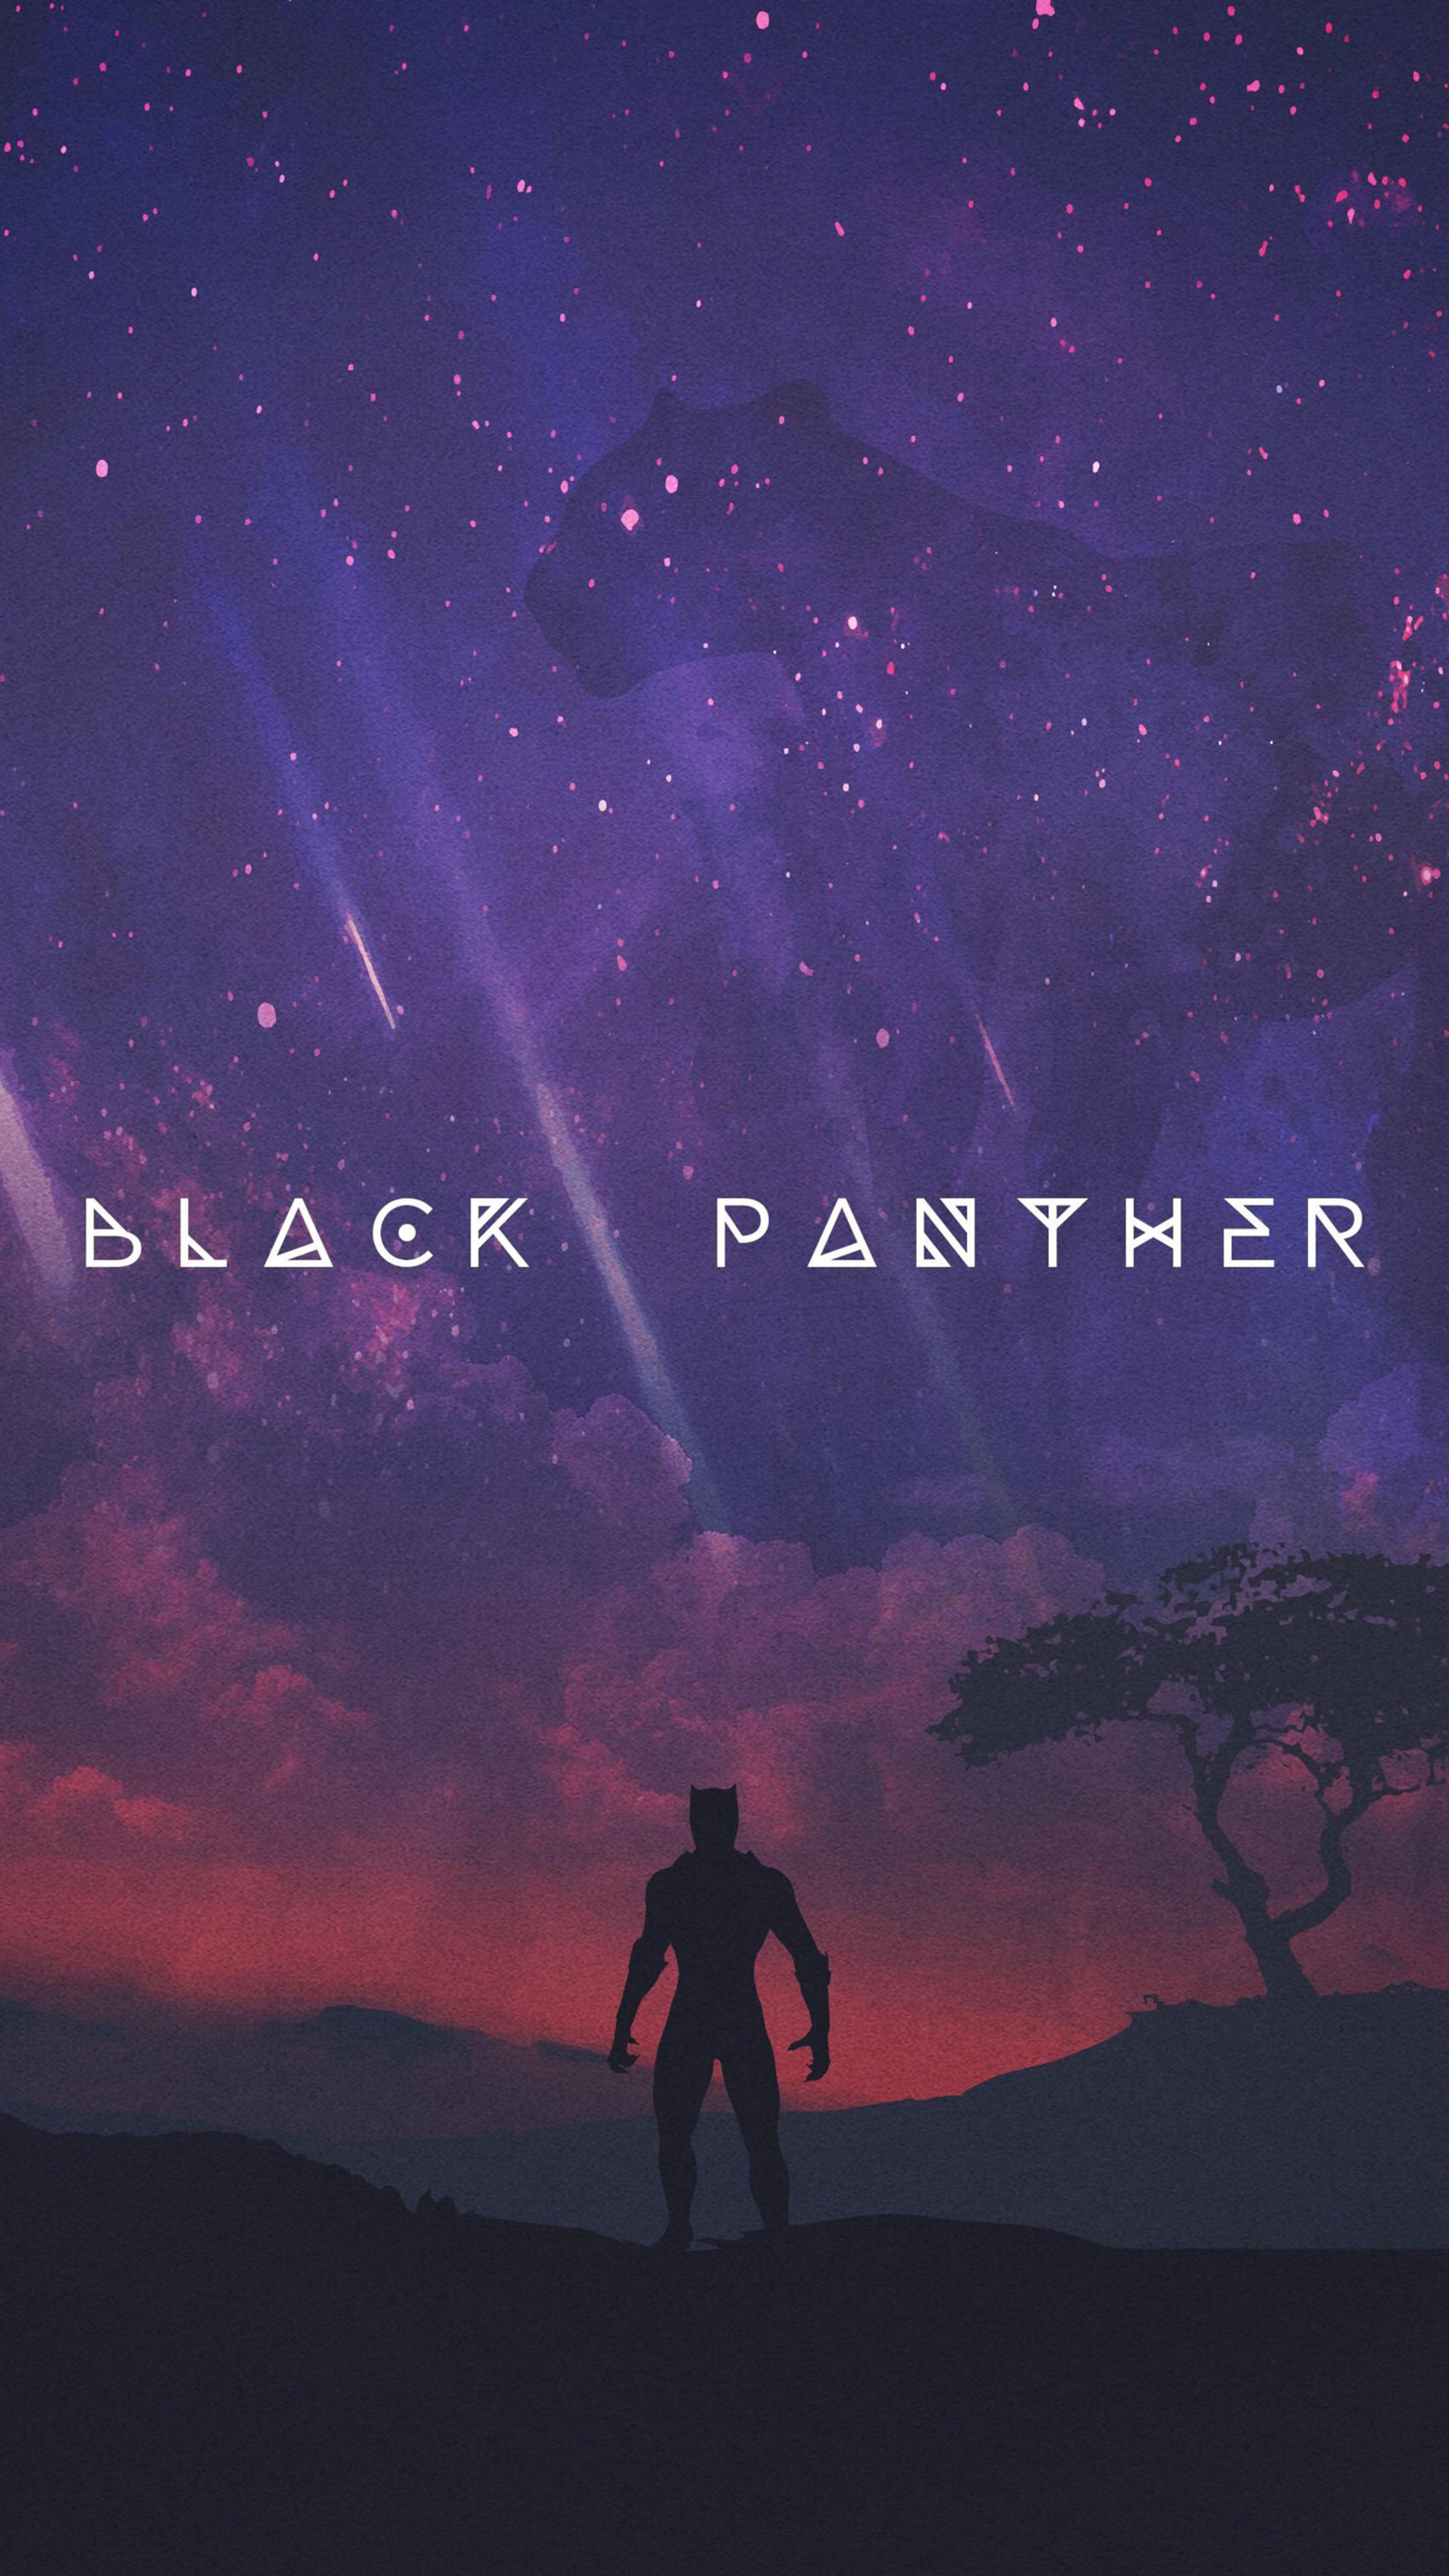 2160x3840 Black Panther Movie Artwork 2018 Sony Xperia X,XZ,Z5